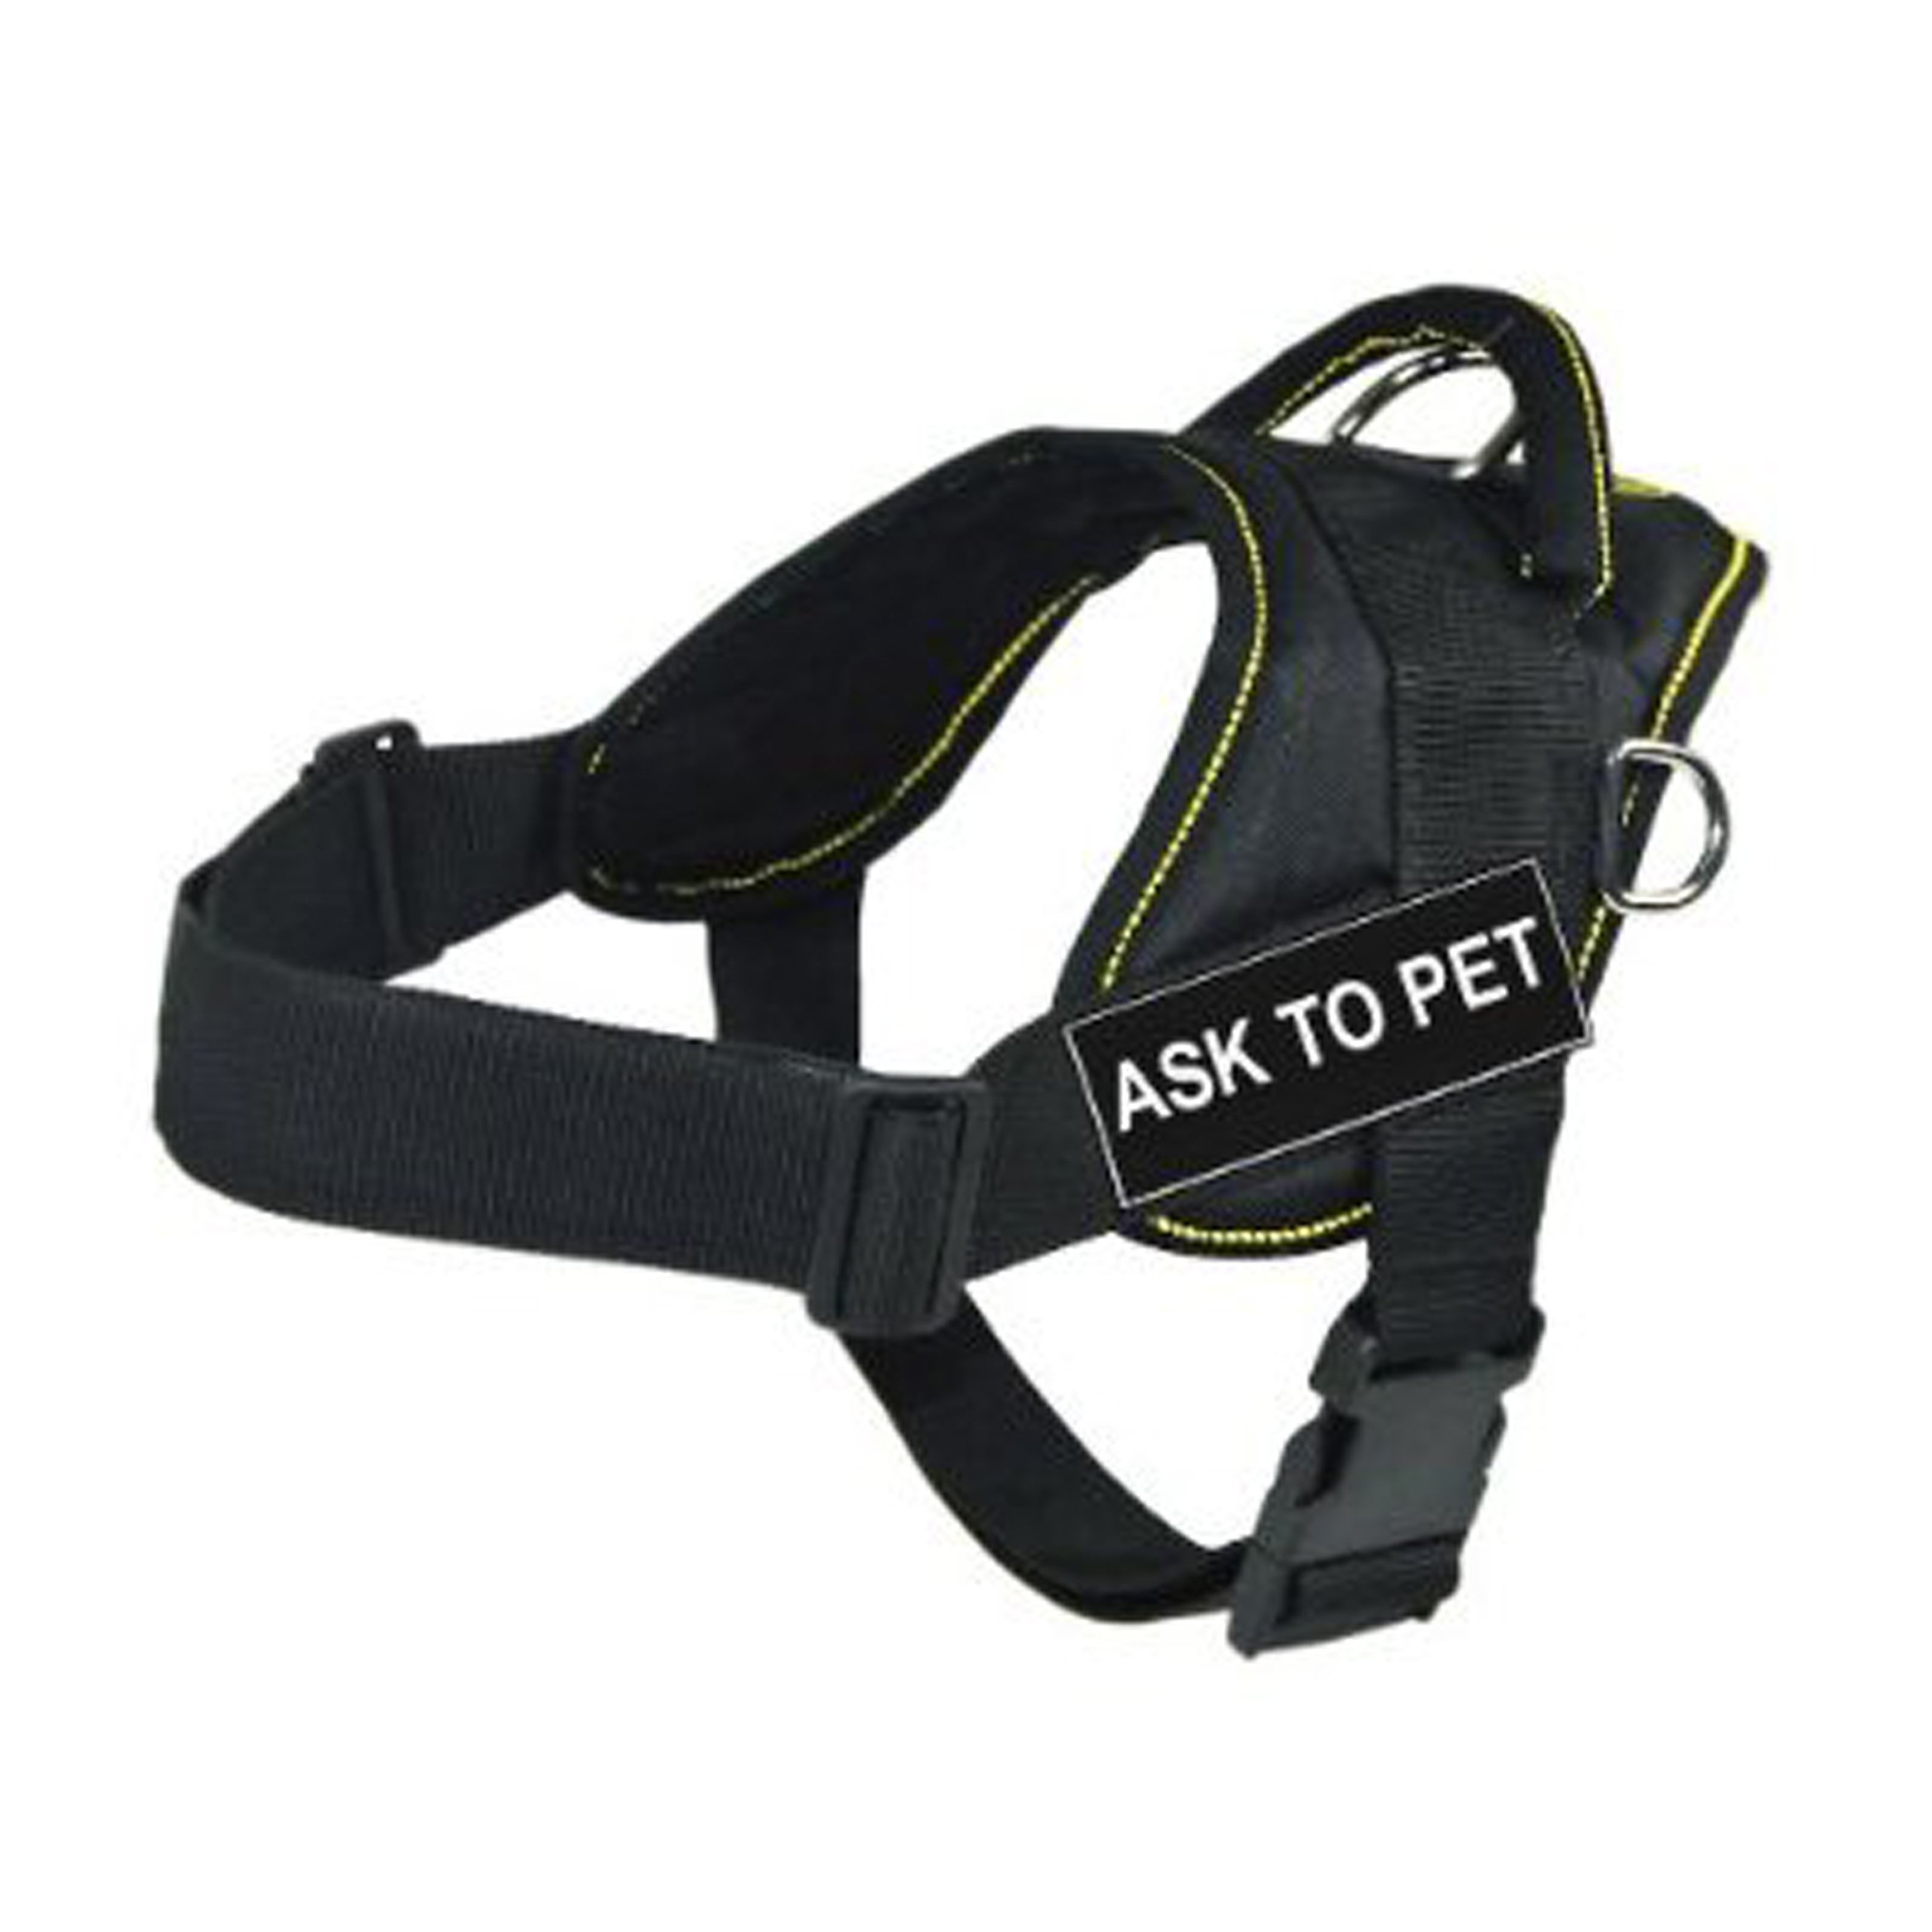 DT Fun Works Harness, Ask To Pet, Black With Yellow Trim, X-Large - Fits Girth Size: 34-Inch to 47-Inch